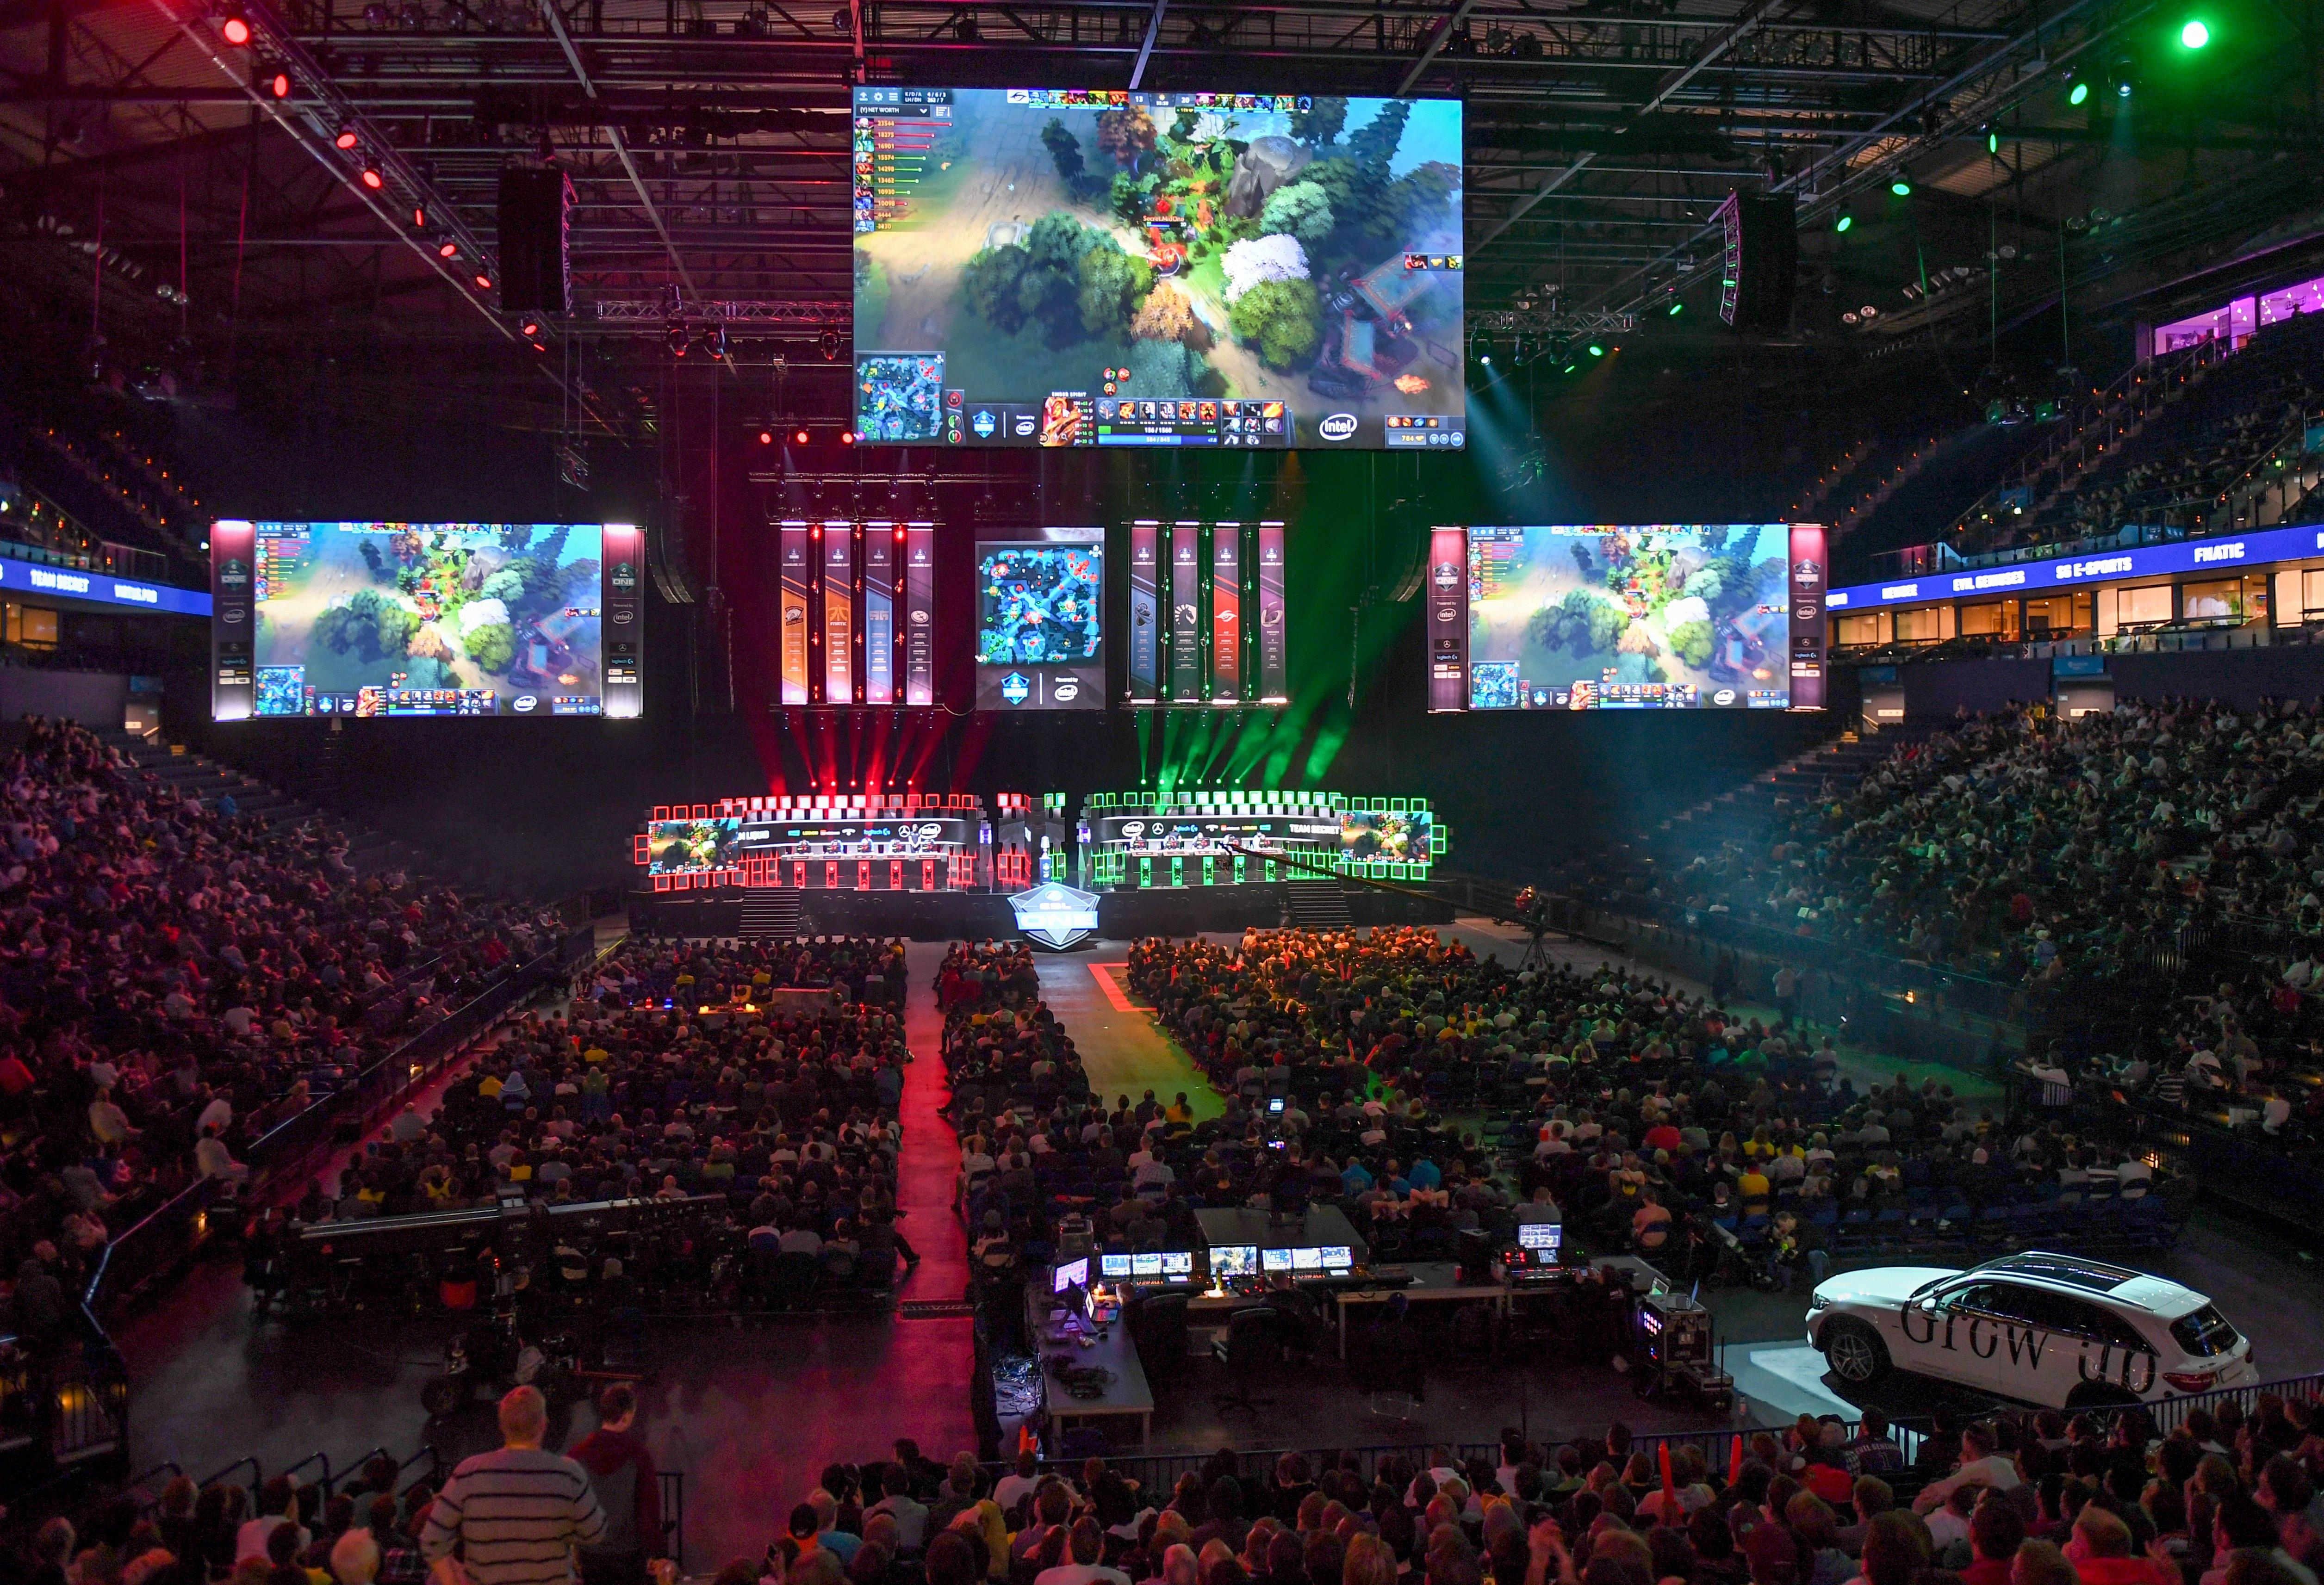 Gullit admits he was first shocked at the size and popularity of eSports - but it opened his eyes